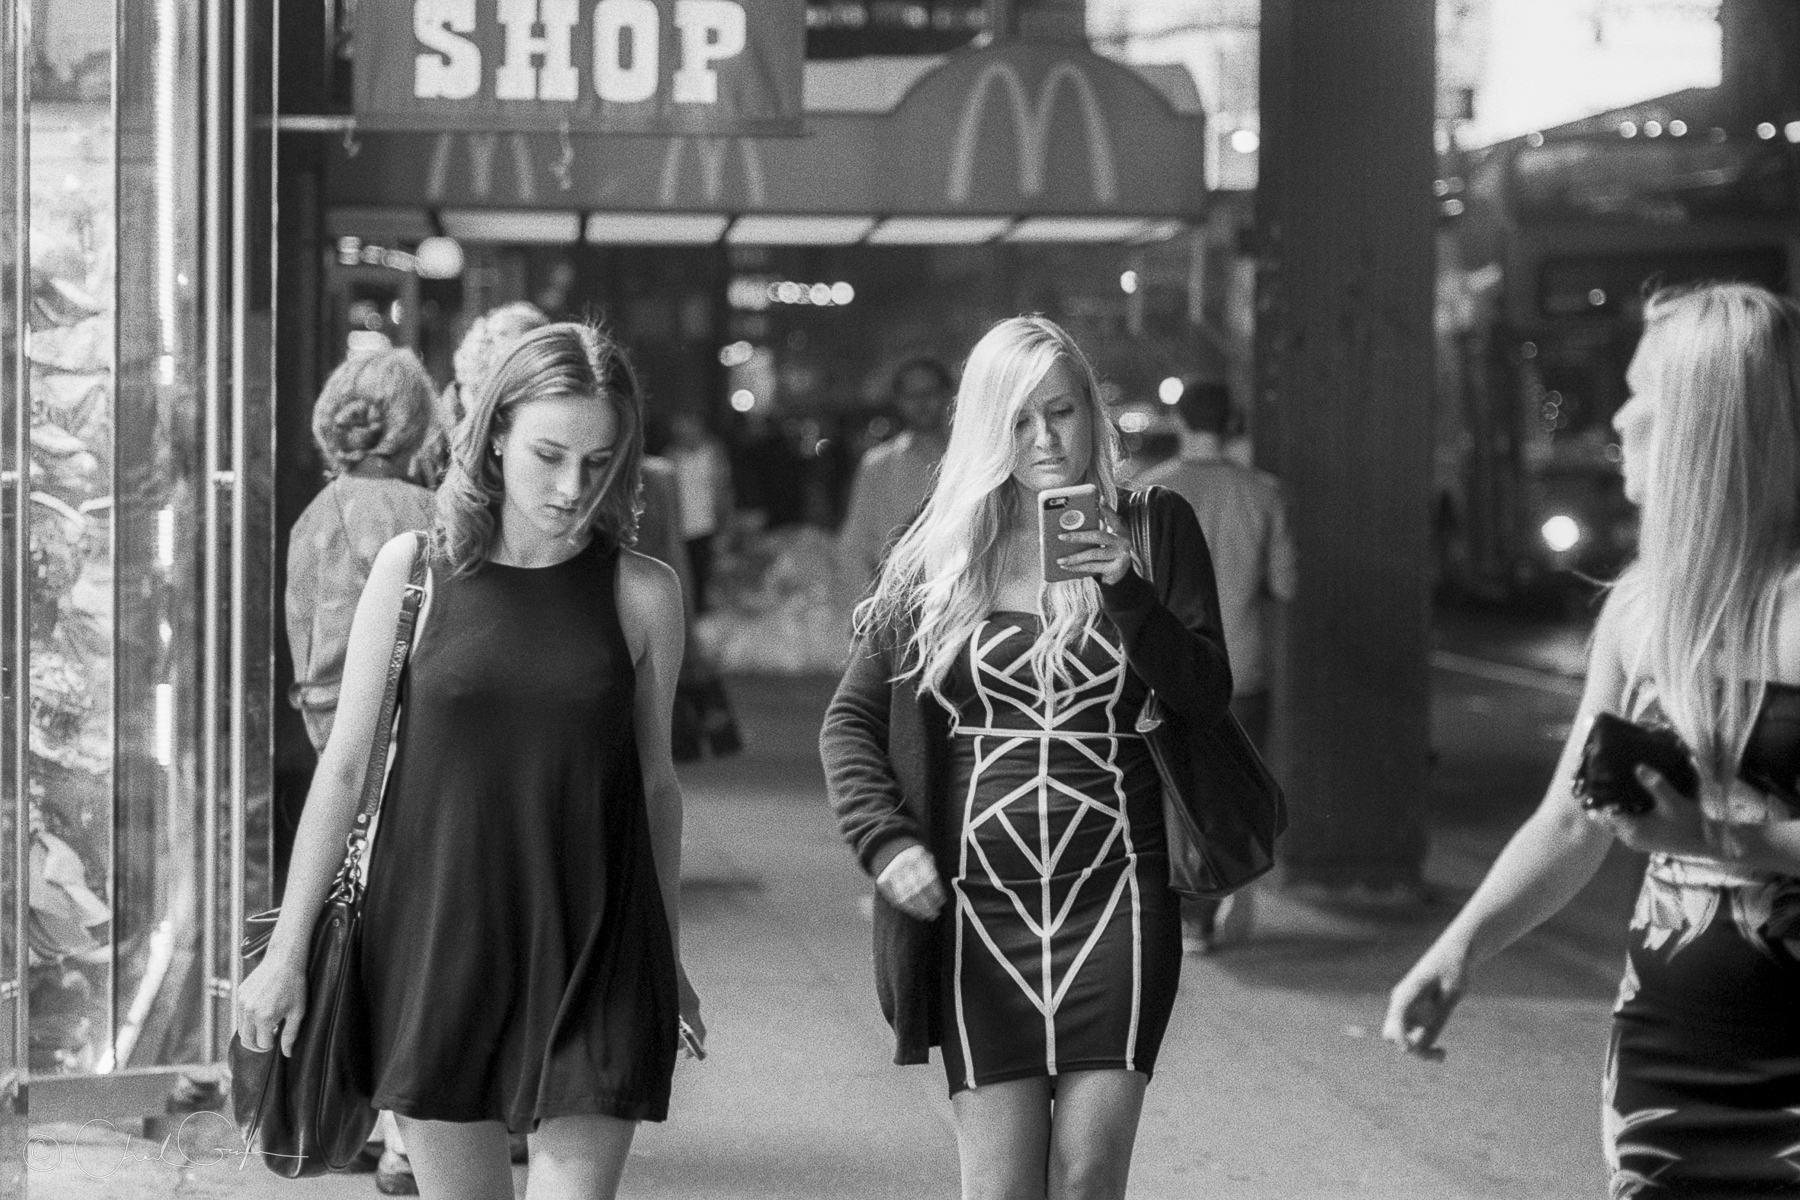 Girls Night Out, 8th Avenue by Chad Gayle (Image)